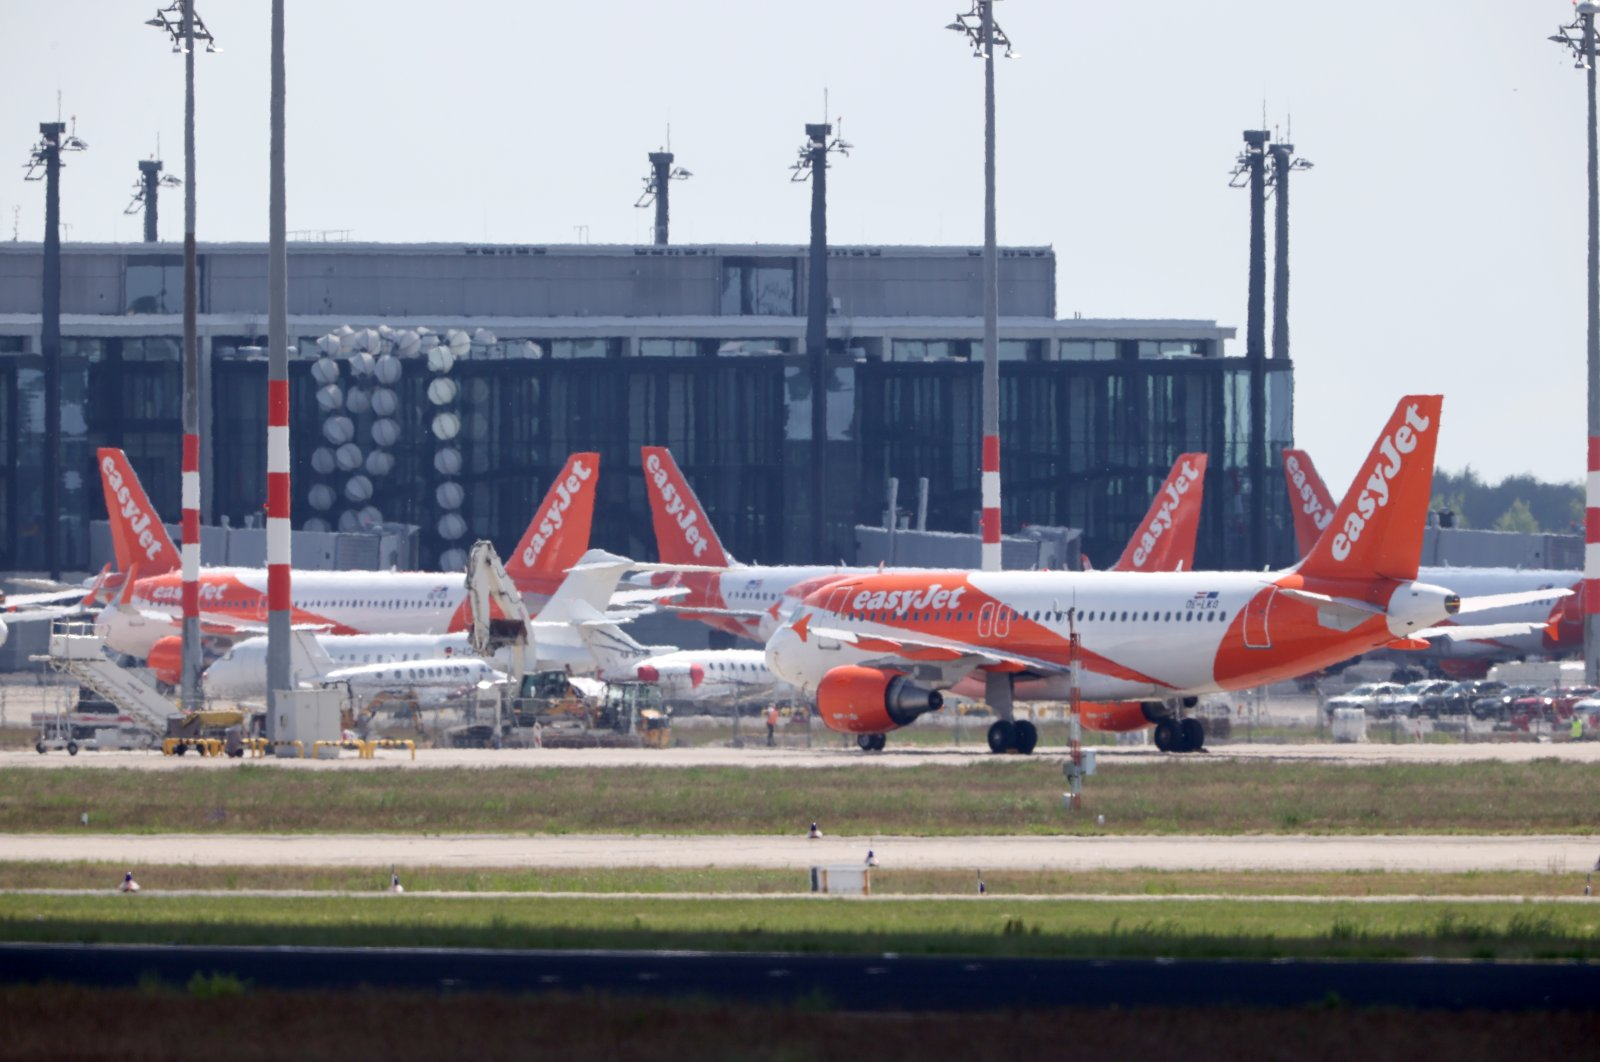 EasyJet planes are seen at the Berlin Schoenefeld airport, amid the spread of the coronavirus, Schoenefeld, Germany, May 26, 2020. (Reuters Photo)